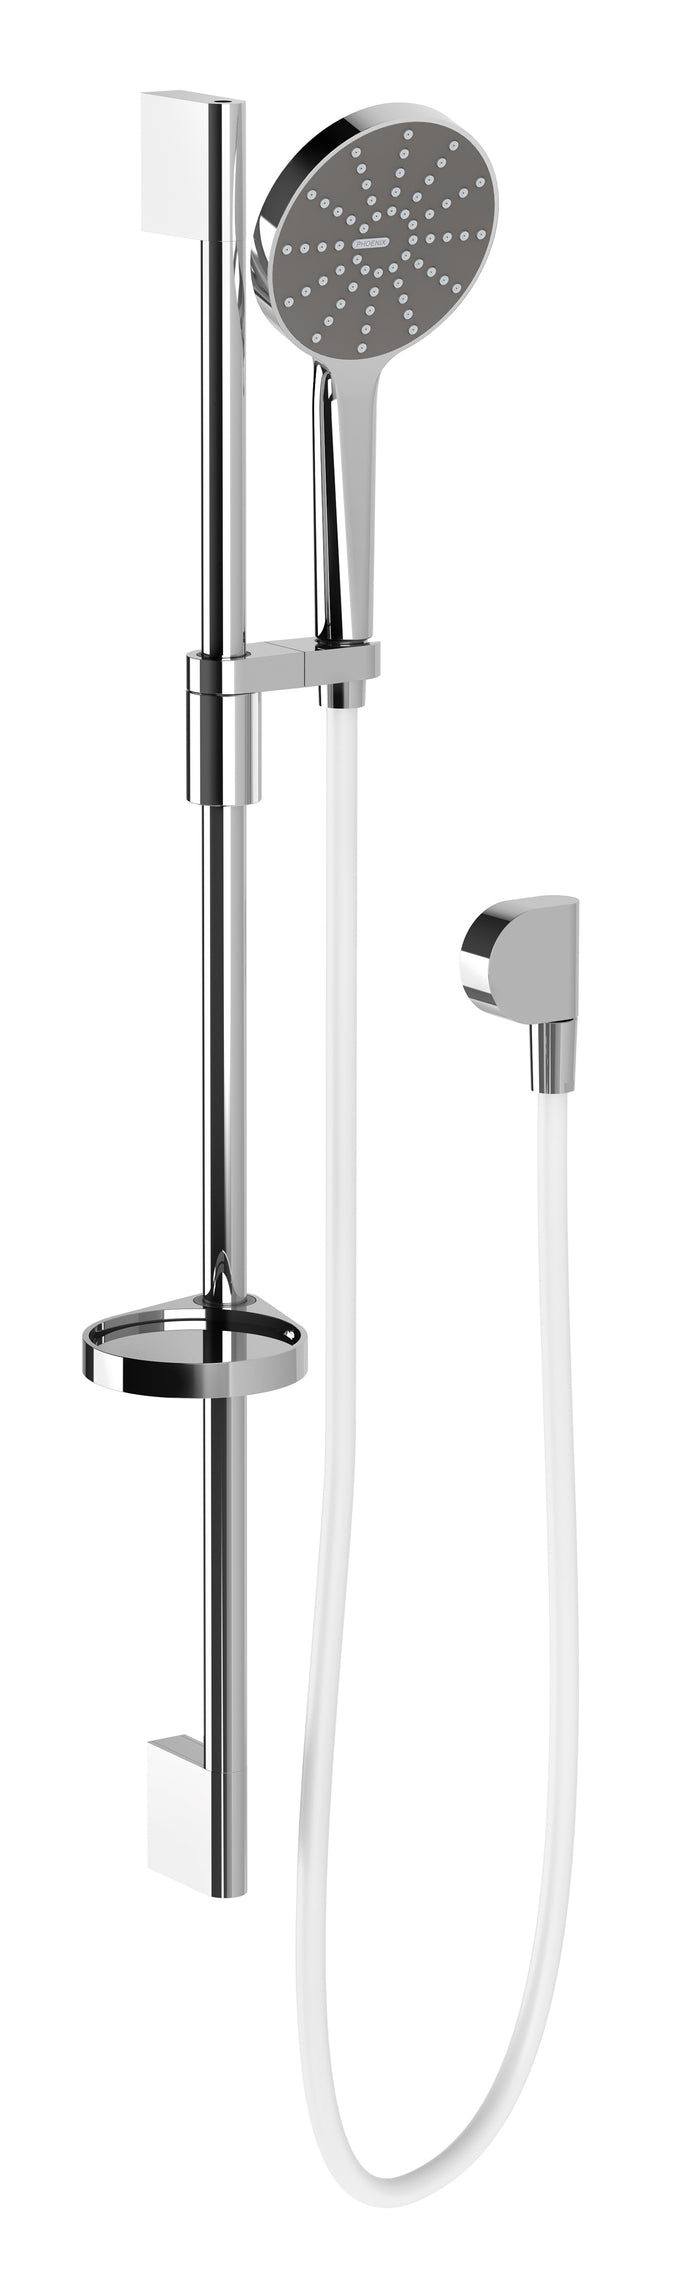 NX VIVE RAIL SHOWER